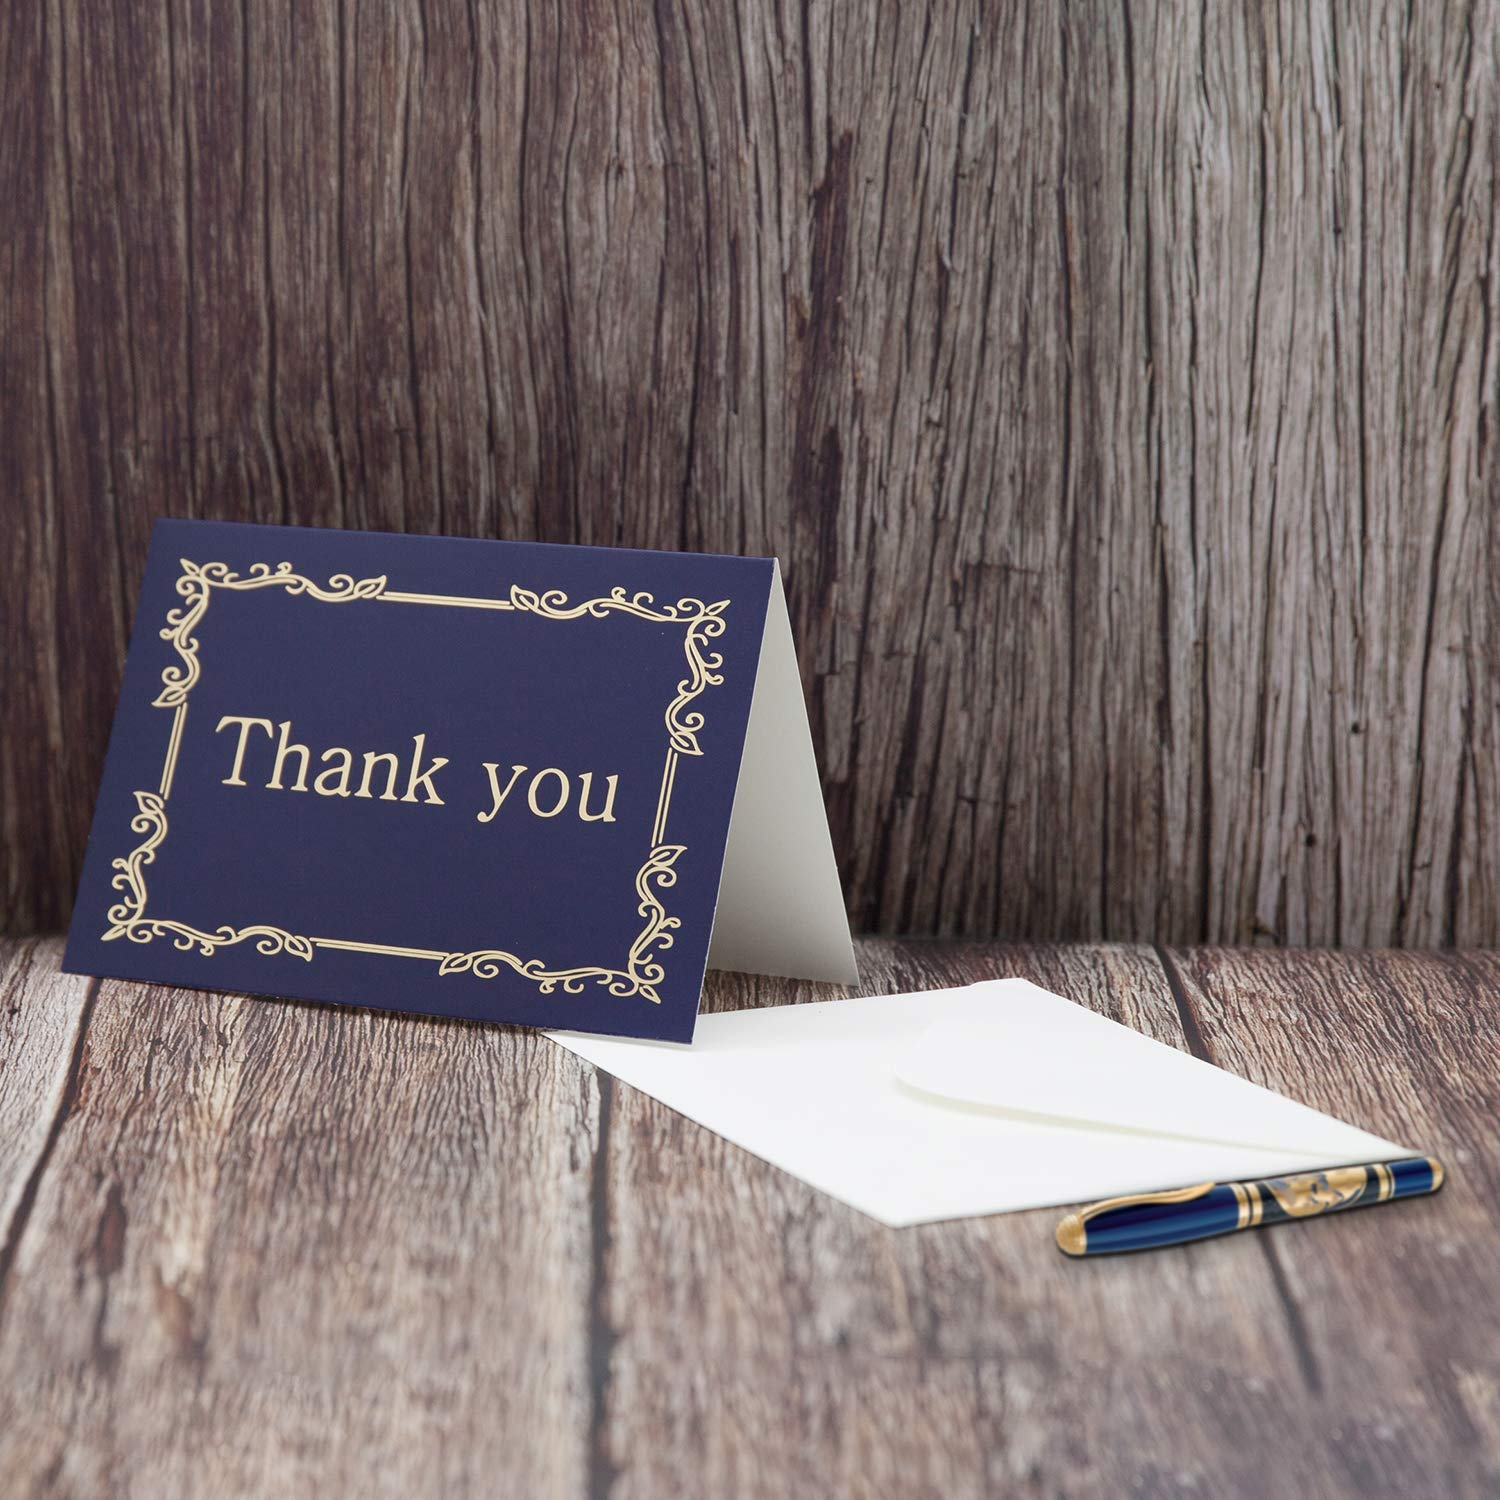 Party Favors Baby Shower Graduation Greeting Cards Birthday Business Funeral 4x6 inch VONDERSO Thank You Cards Notes in 9 Designs Blank Inside with Envelops for Wedding Navy-Blue, 60PCS